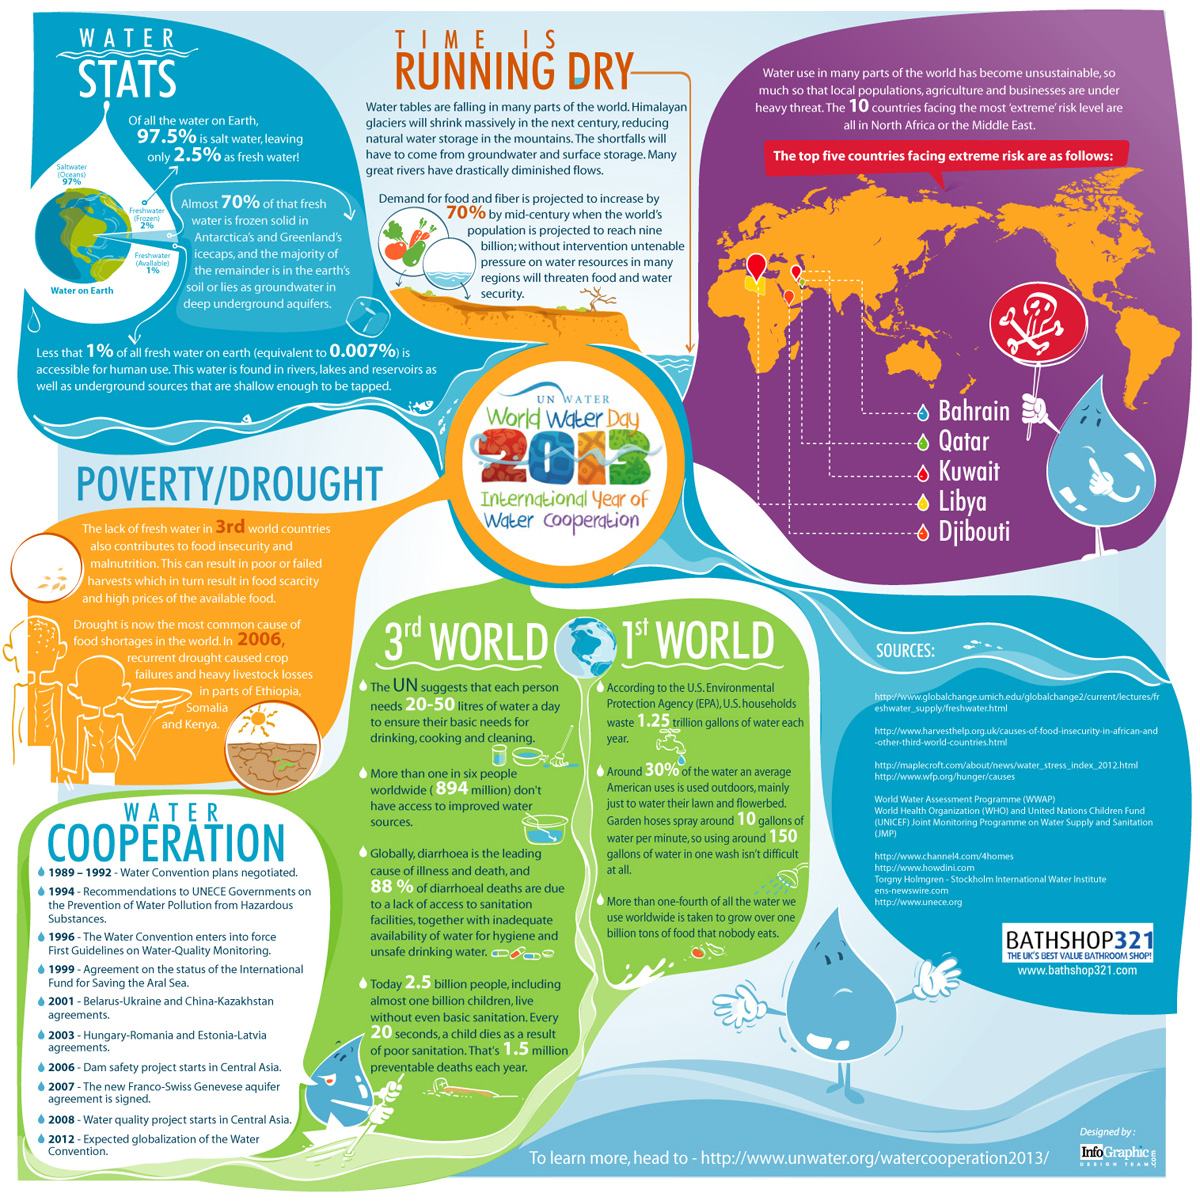 World Water Day 2013 Infographic